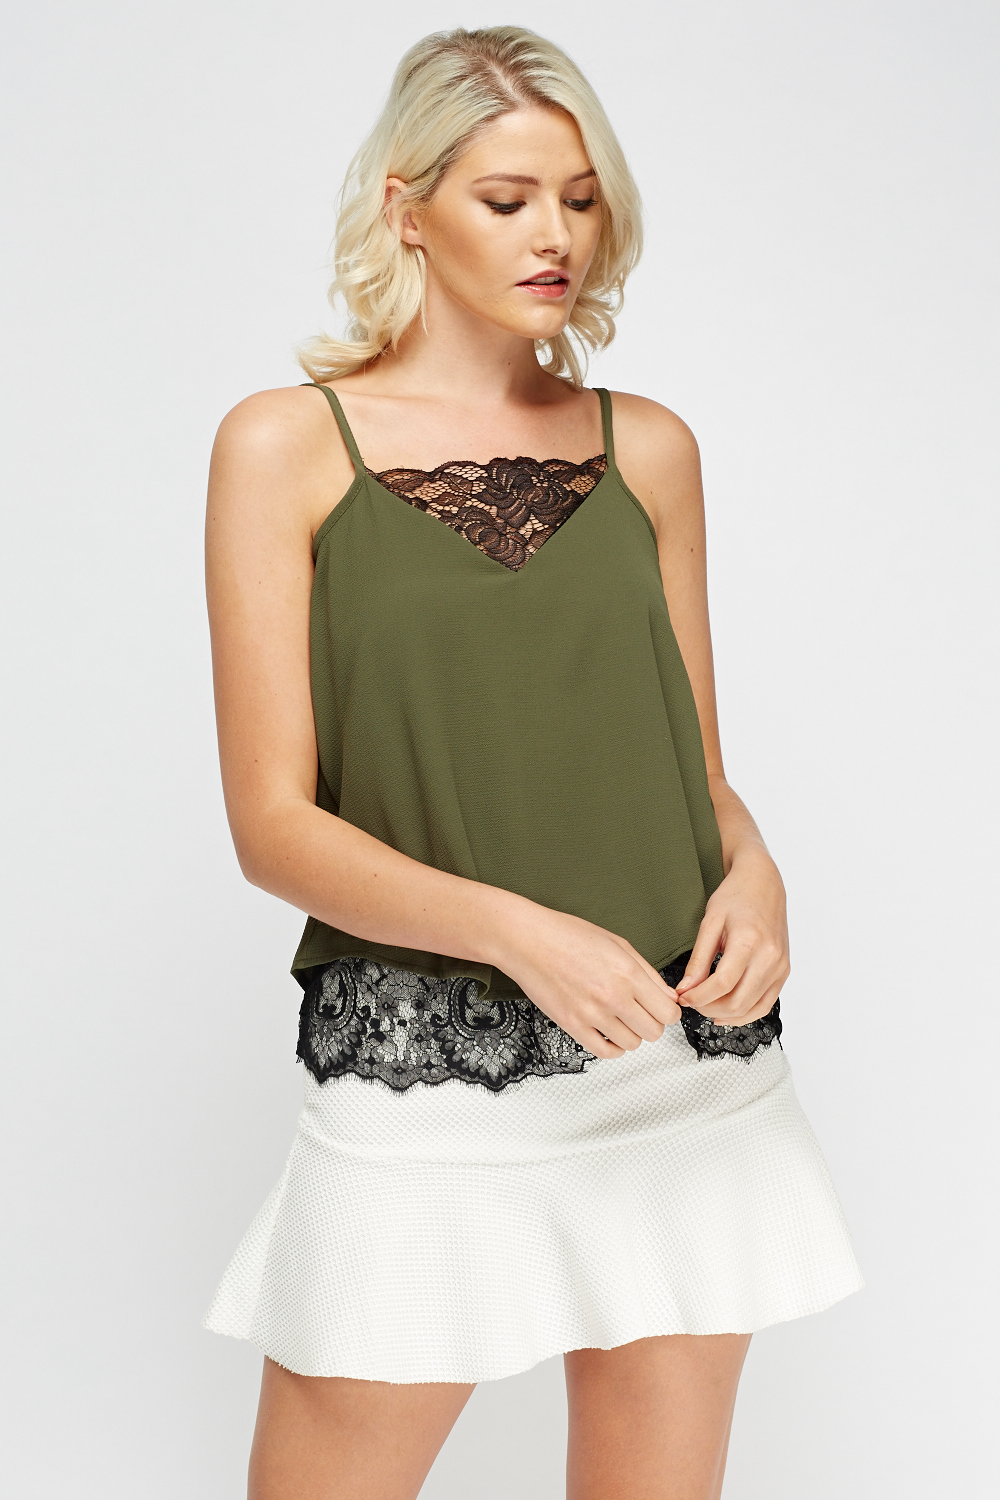 Lace Insert Cami Top Black Or Khaki Just 163 5